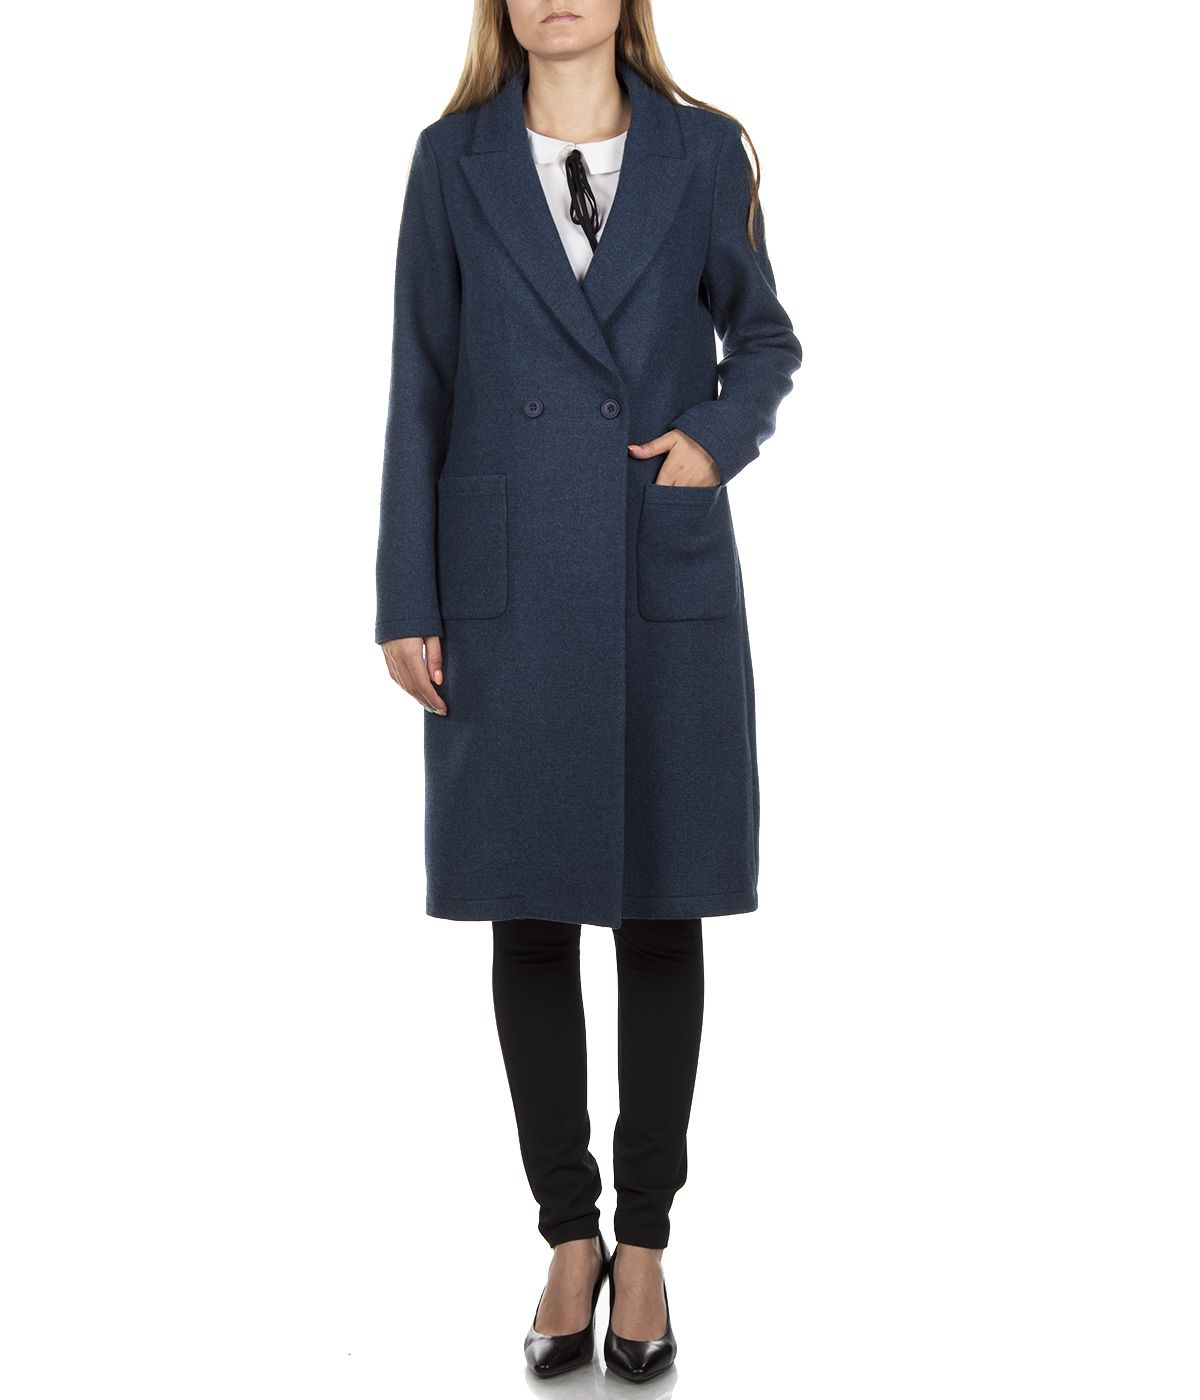 DARK BLUE WOOL COAT WITH ASYMMETRIC CLOSURE 2